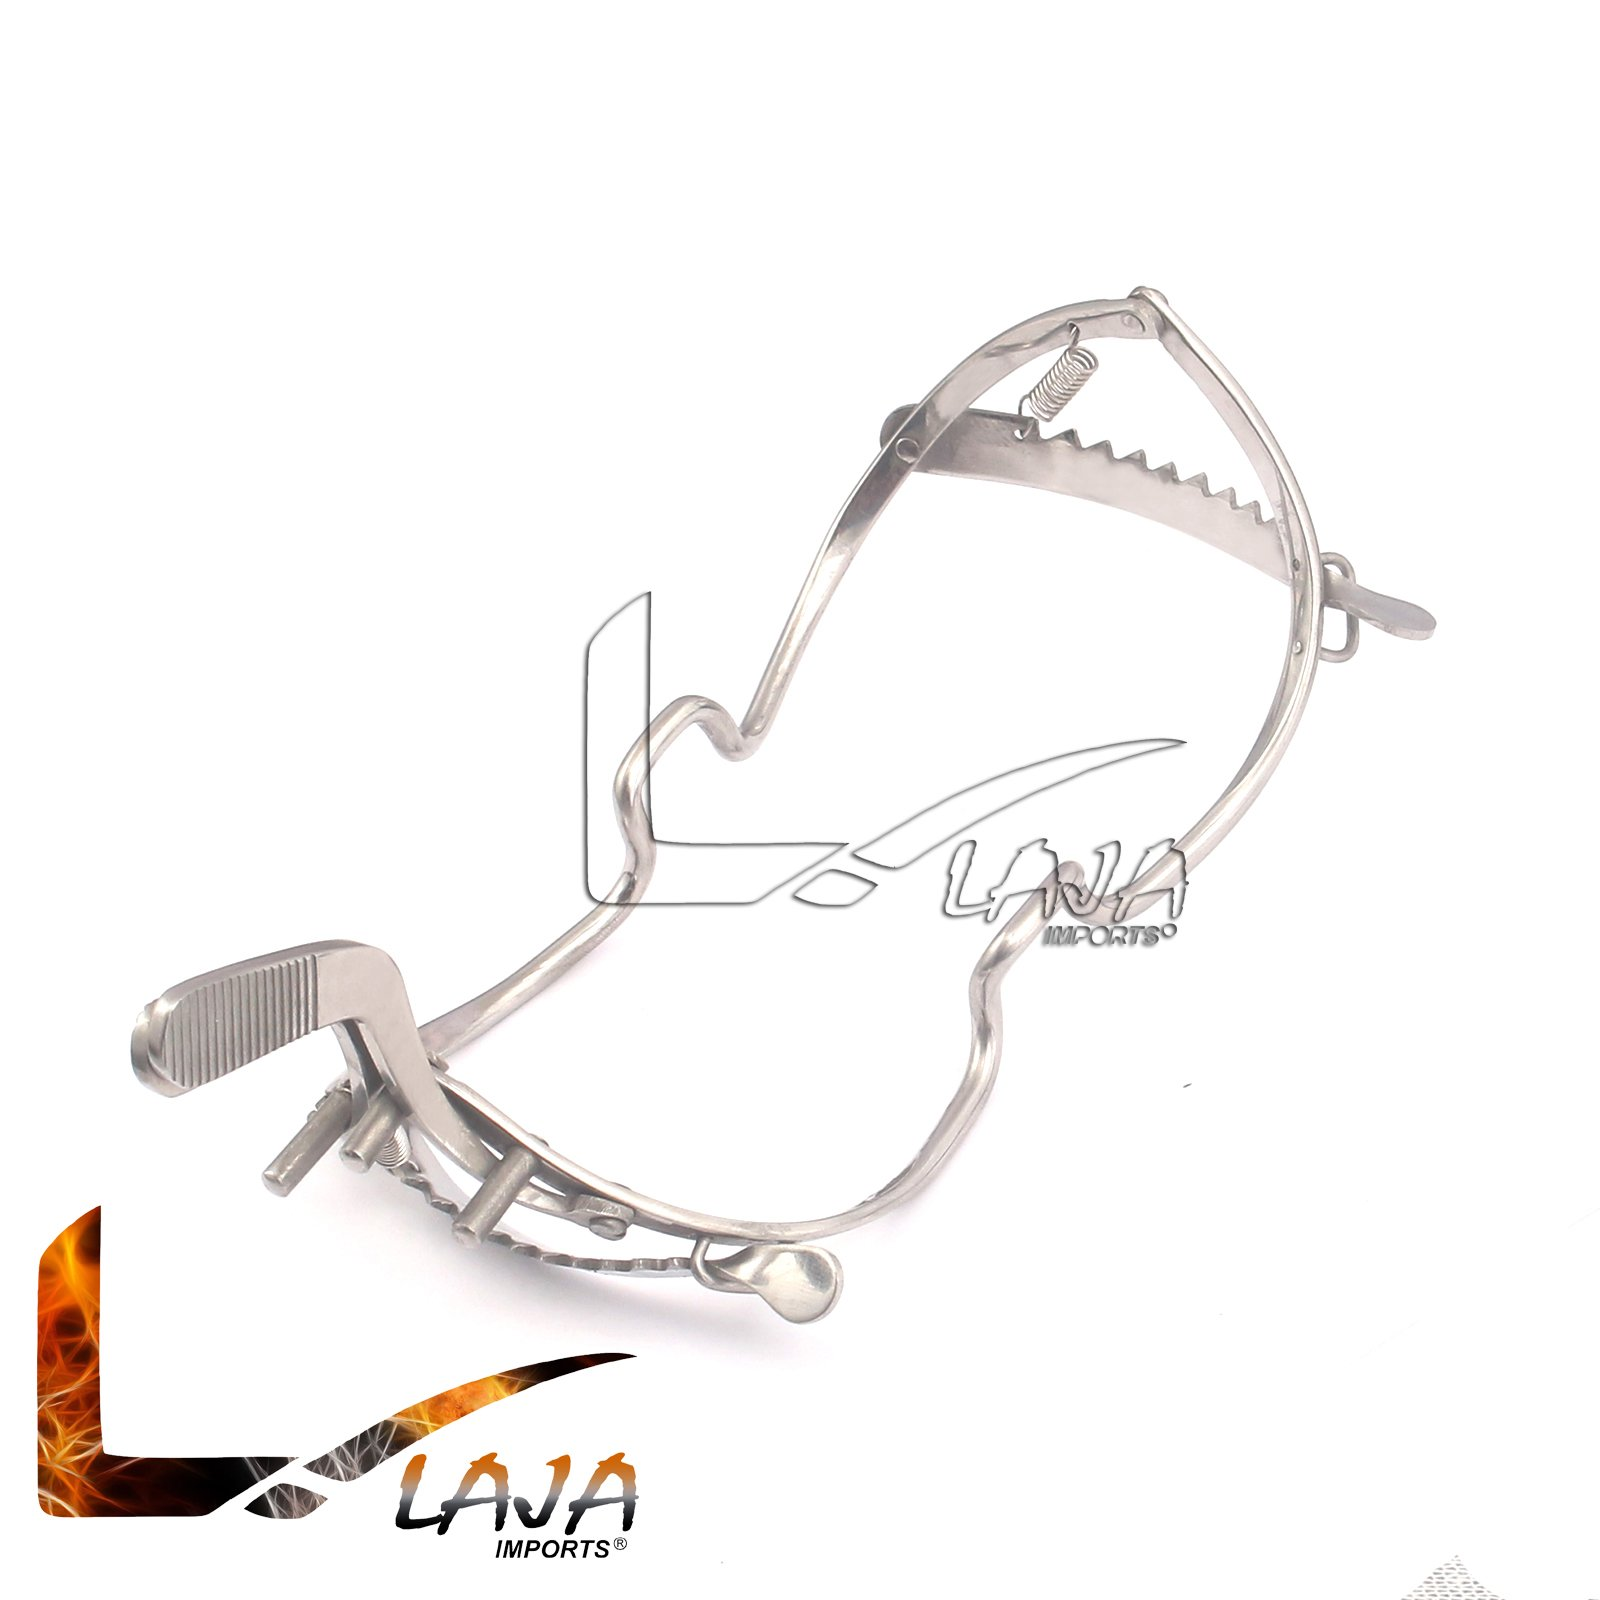 LAJA Imports 6'' Whitehead Dental Mouth Immobilizer Gag Stainless Steel